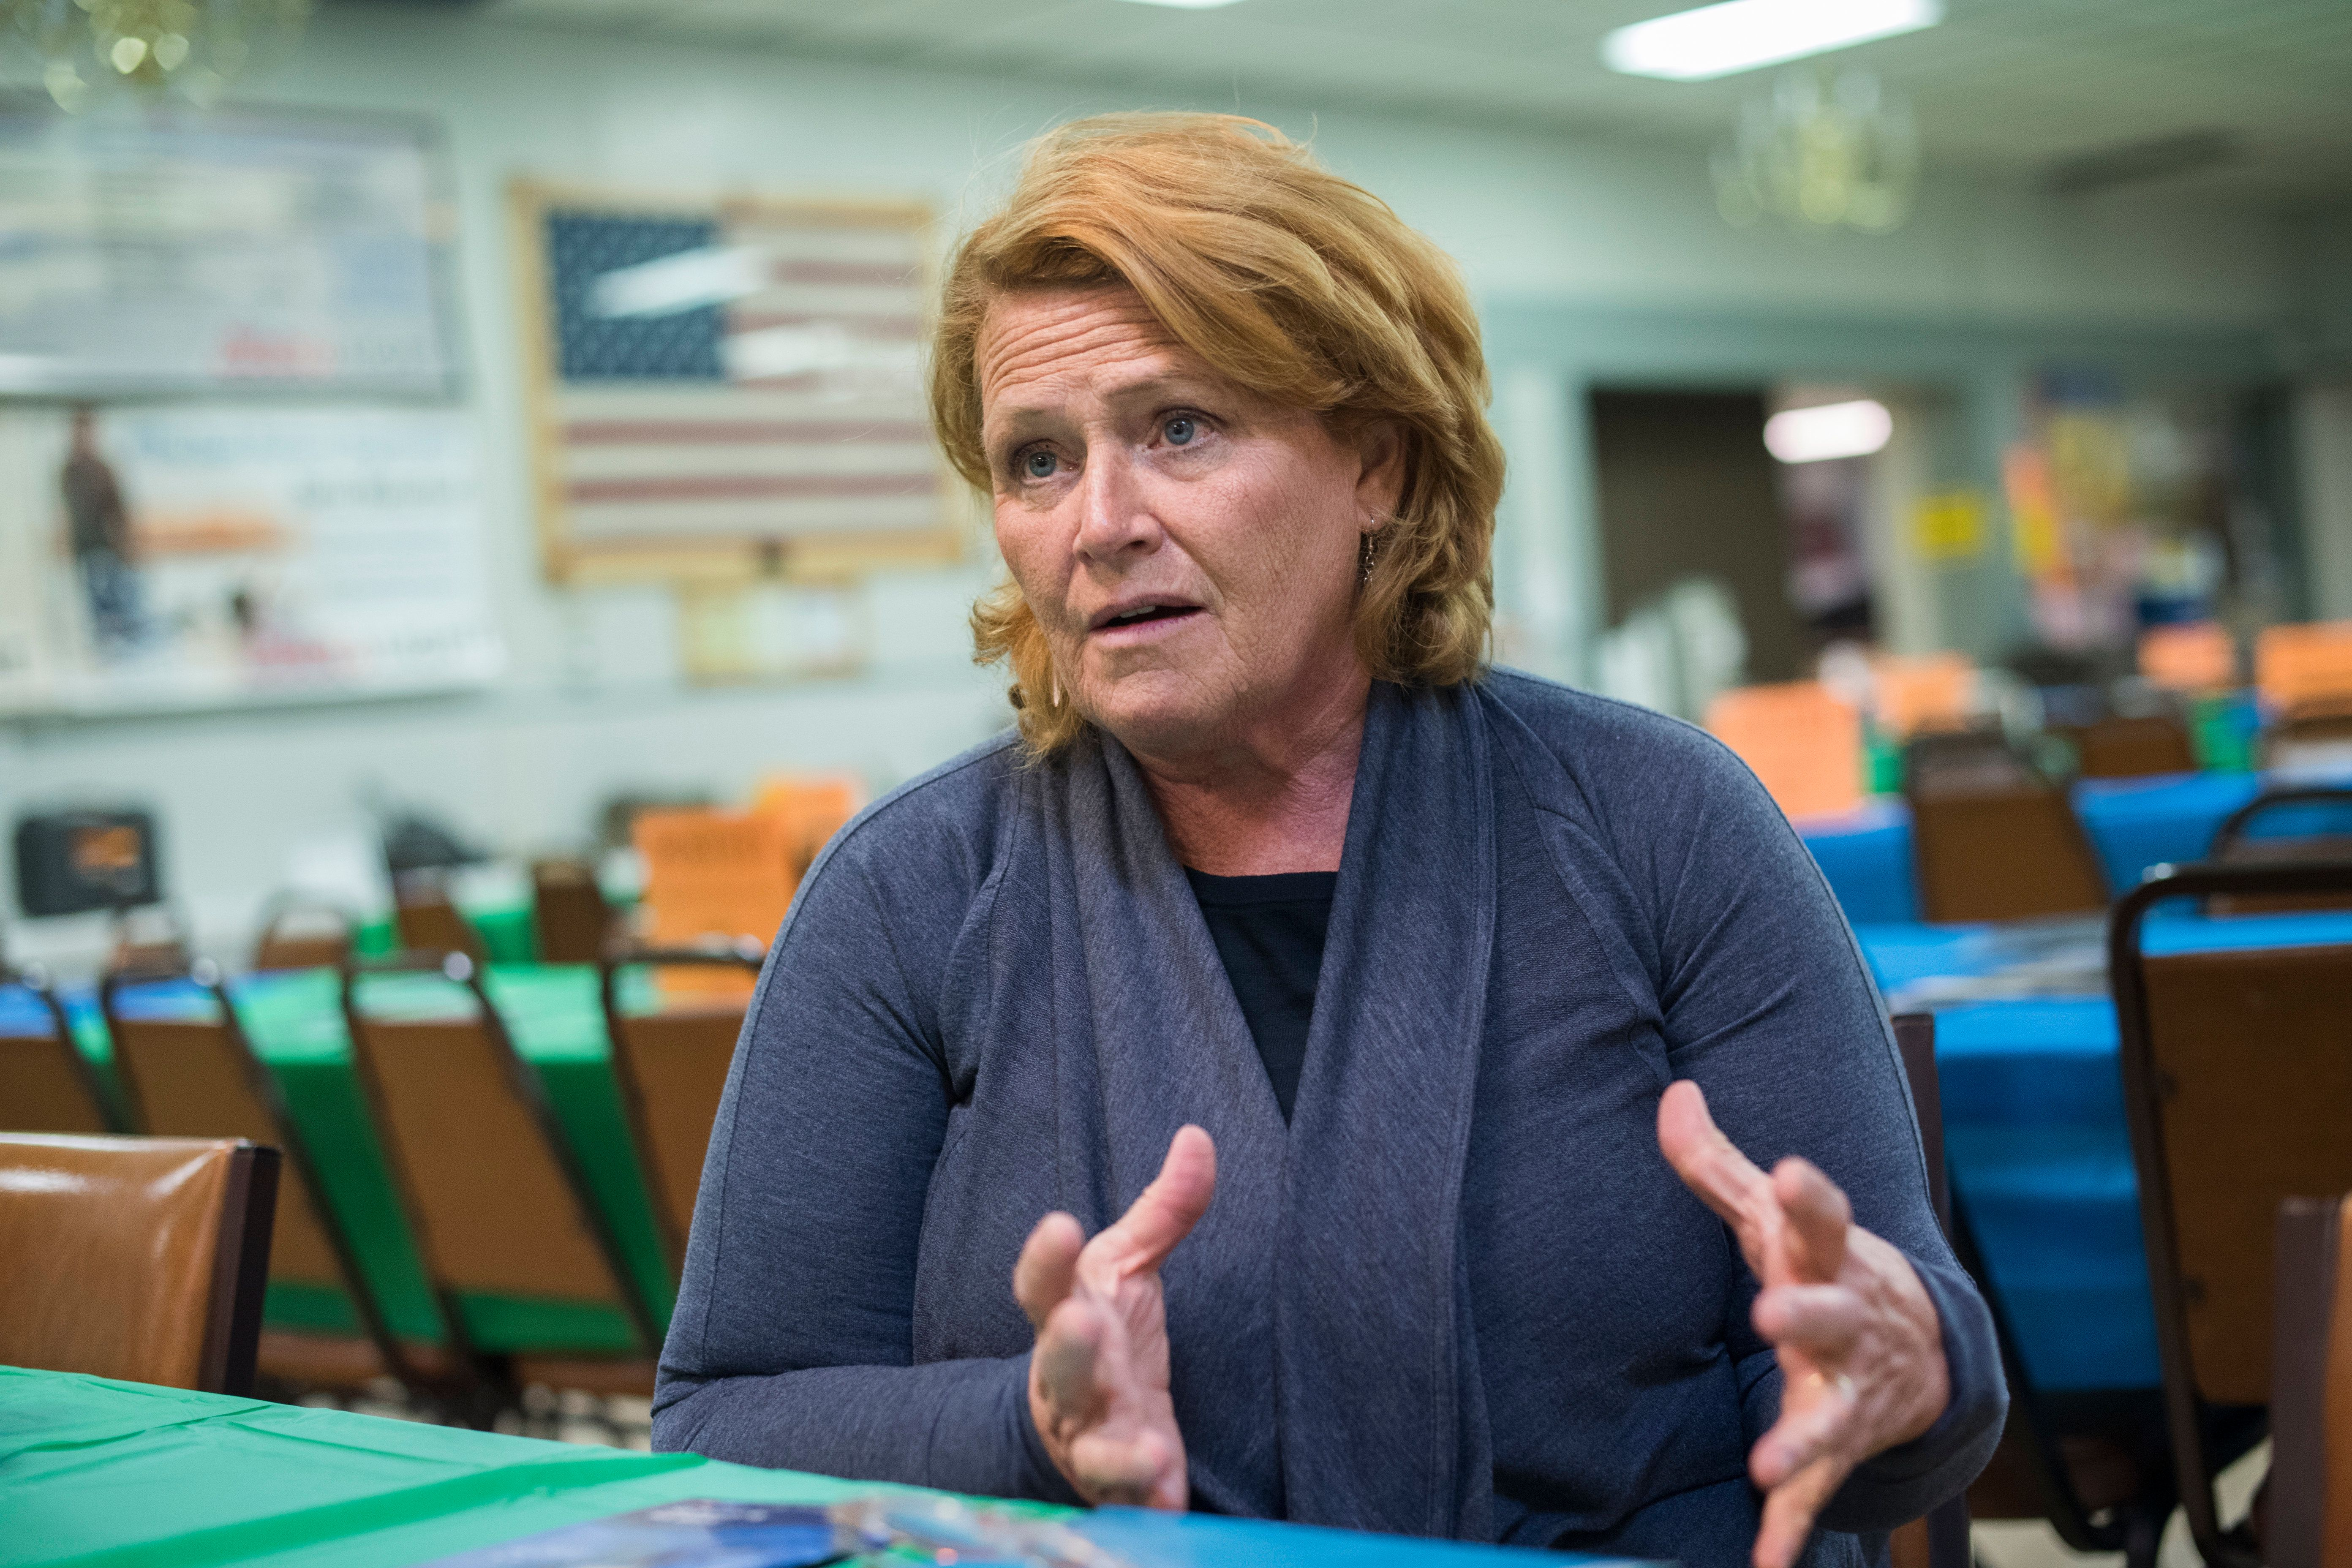 UNITED STATES - AUGUST 17: Sen. Heidi Heitkamp, D-N.D., is interviewed at Amvets Club in Bismarck, N.D., on August 17, 2018. Heitkamp is running against  Rep. Kevin Cramer, R-N.D., for the North Dakota Senate seat. (Photo By Tom Williams/CQ Roll Call)